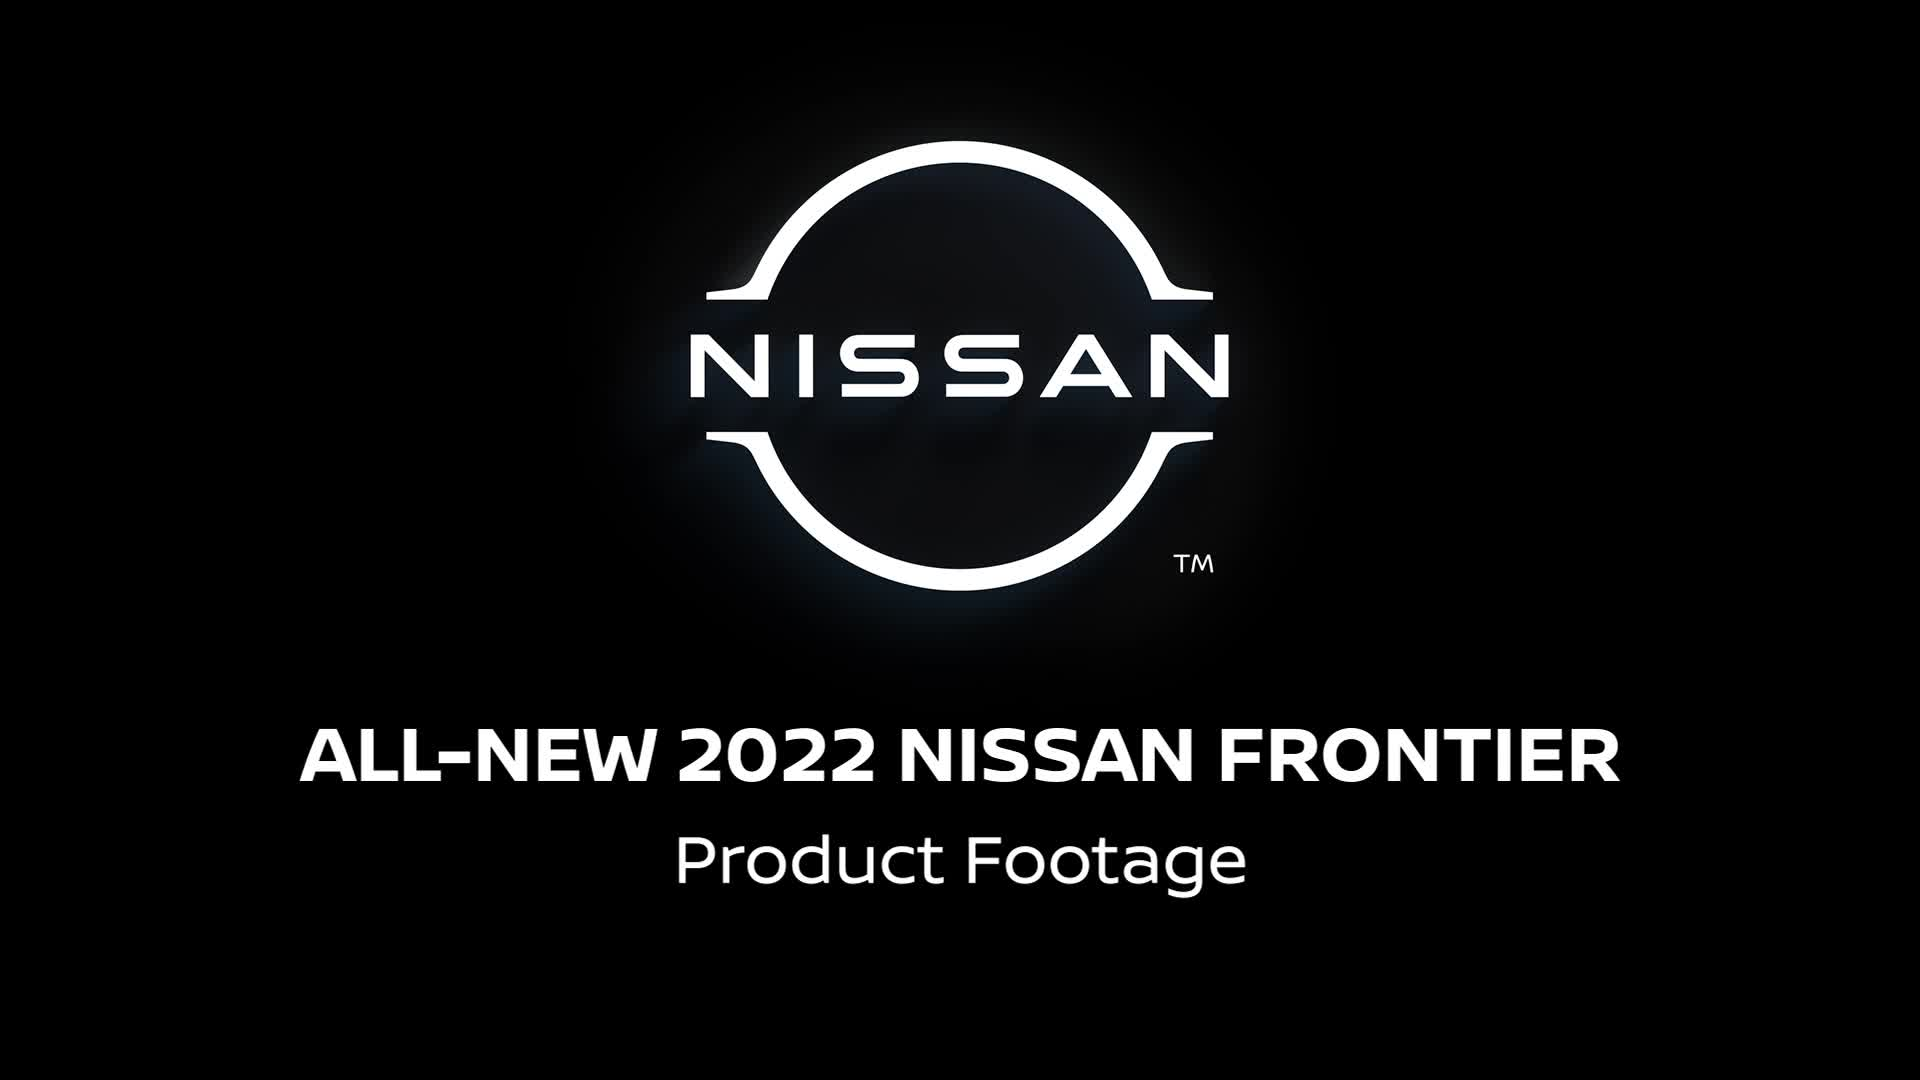 All-new 2022 Nissan Frontier and all-new 2022 Pathfinder complete Nissan NEXT promise of 10 new models in 20 months - Image 3